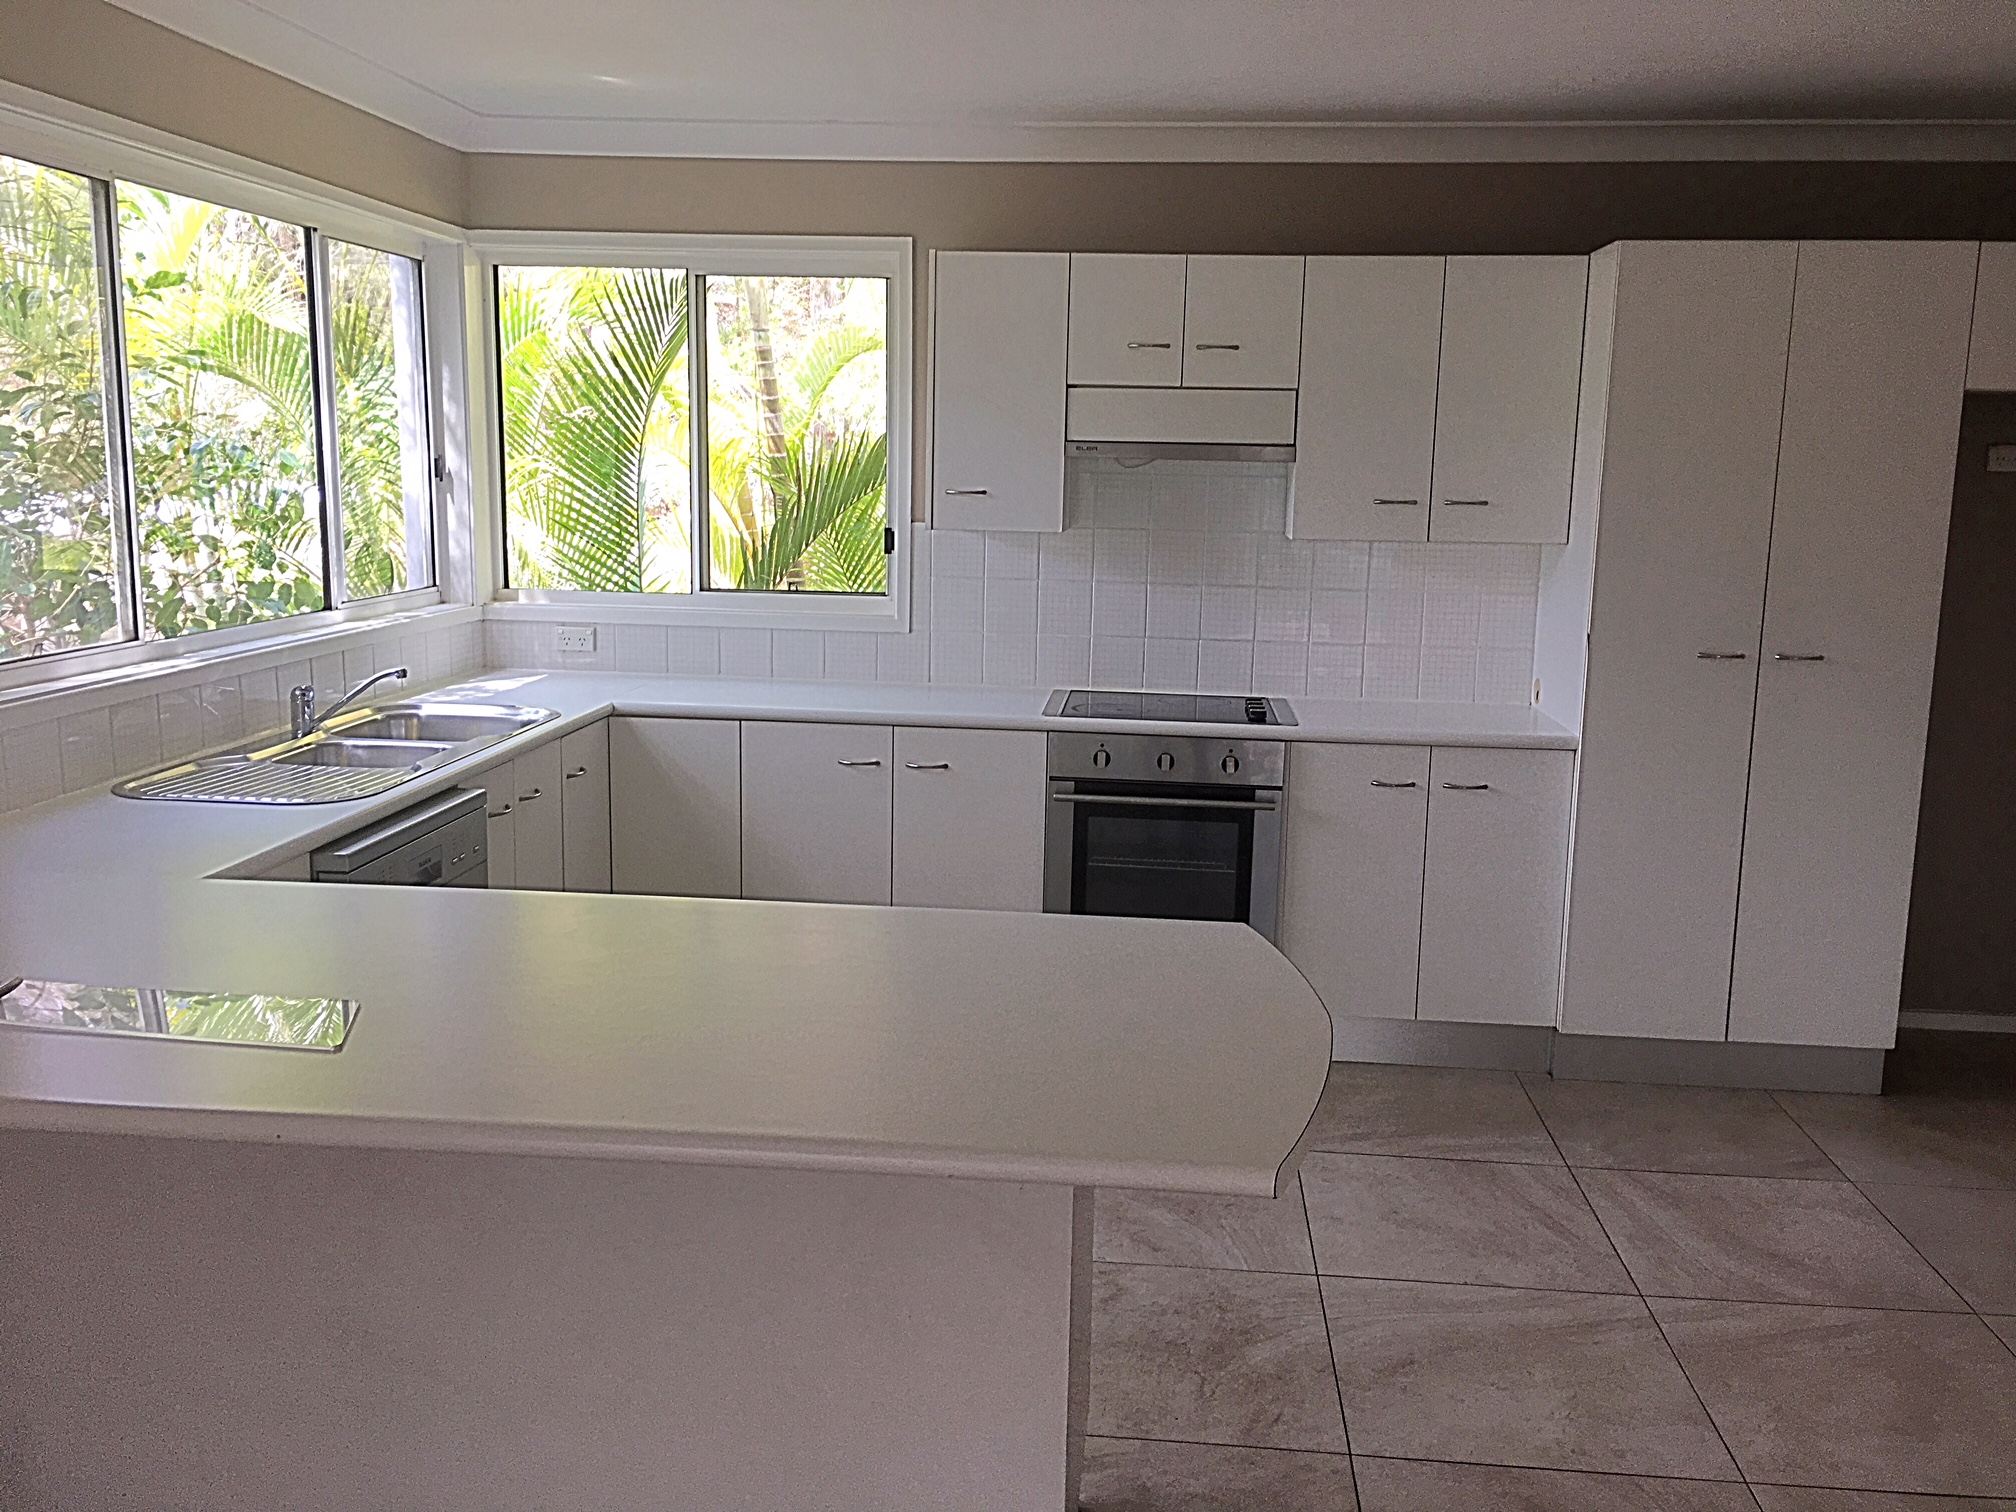 end of lease clean kitchen East Gosford - Copy.JPG